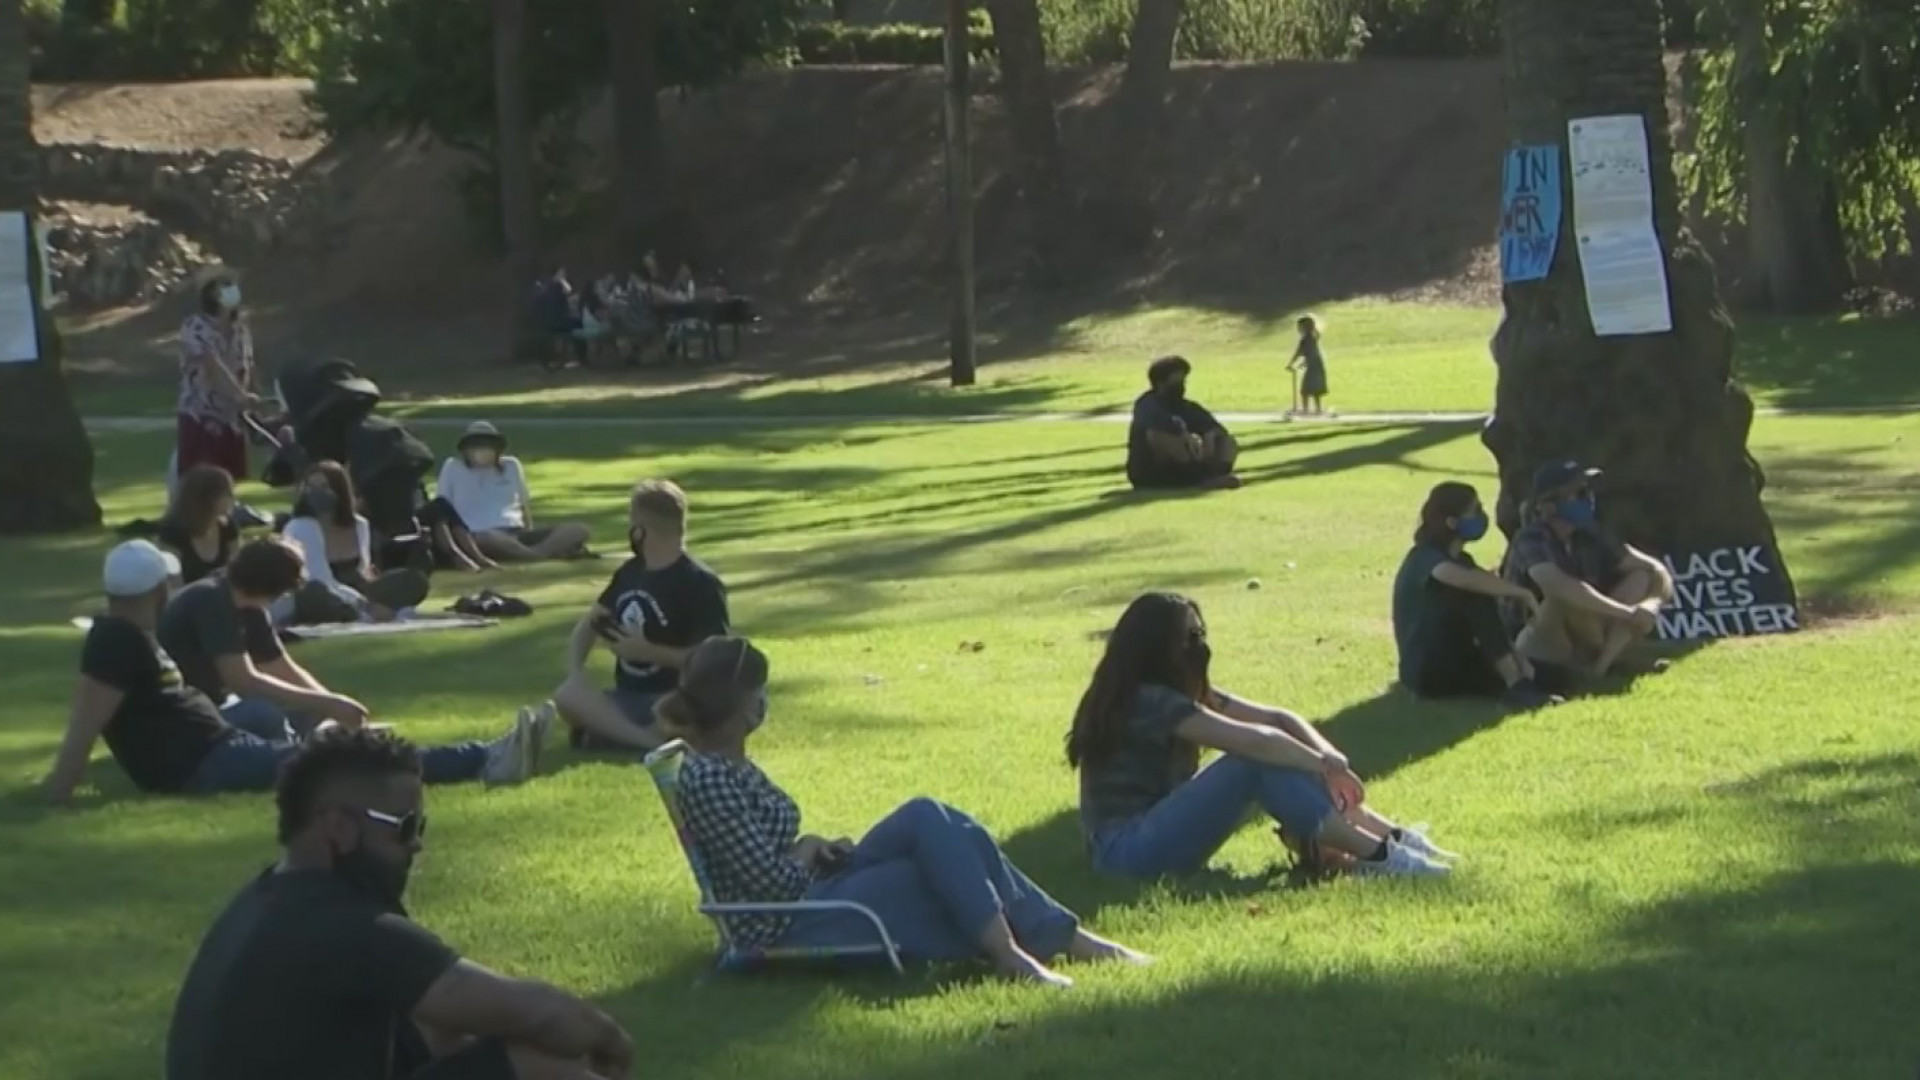 People attend a Black Lives Matter rally at a park in South Pasadena on Aug. 9, 2020. (KTLA)